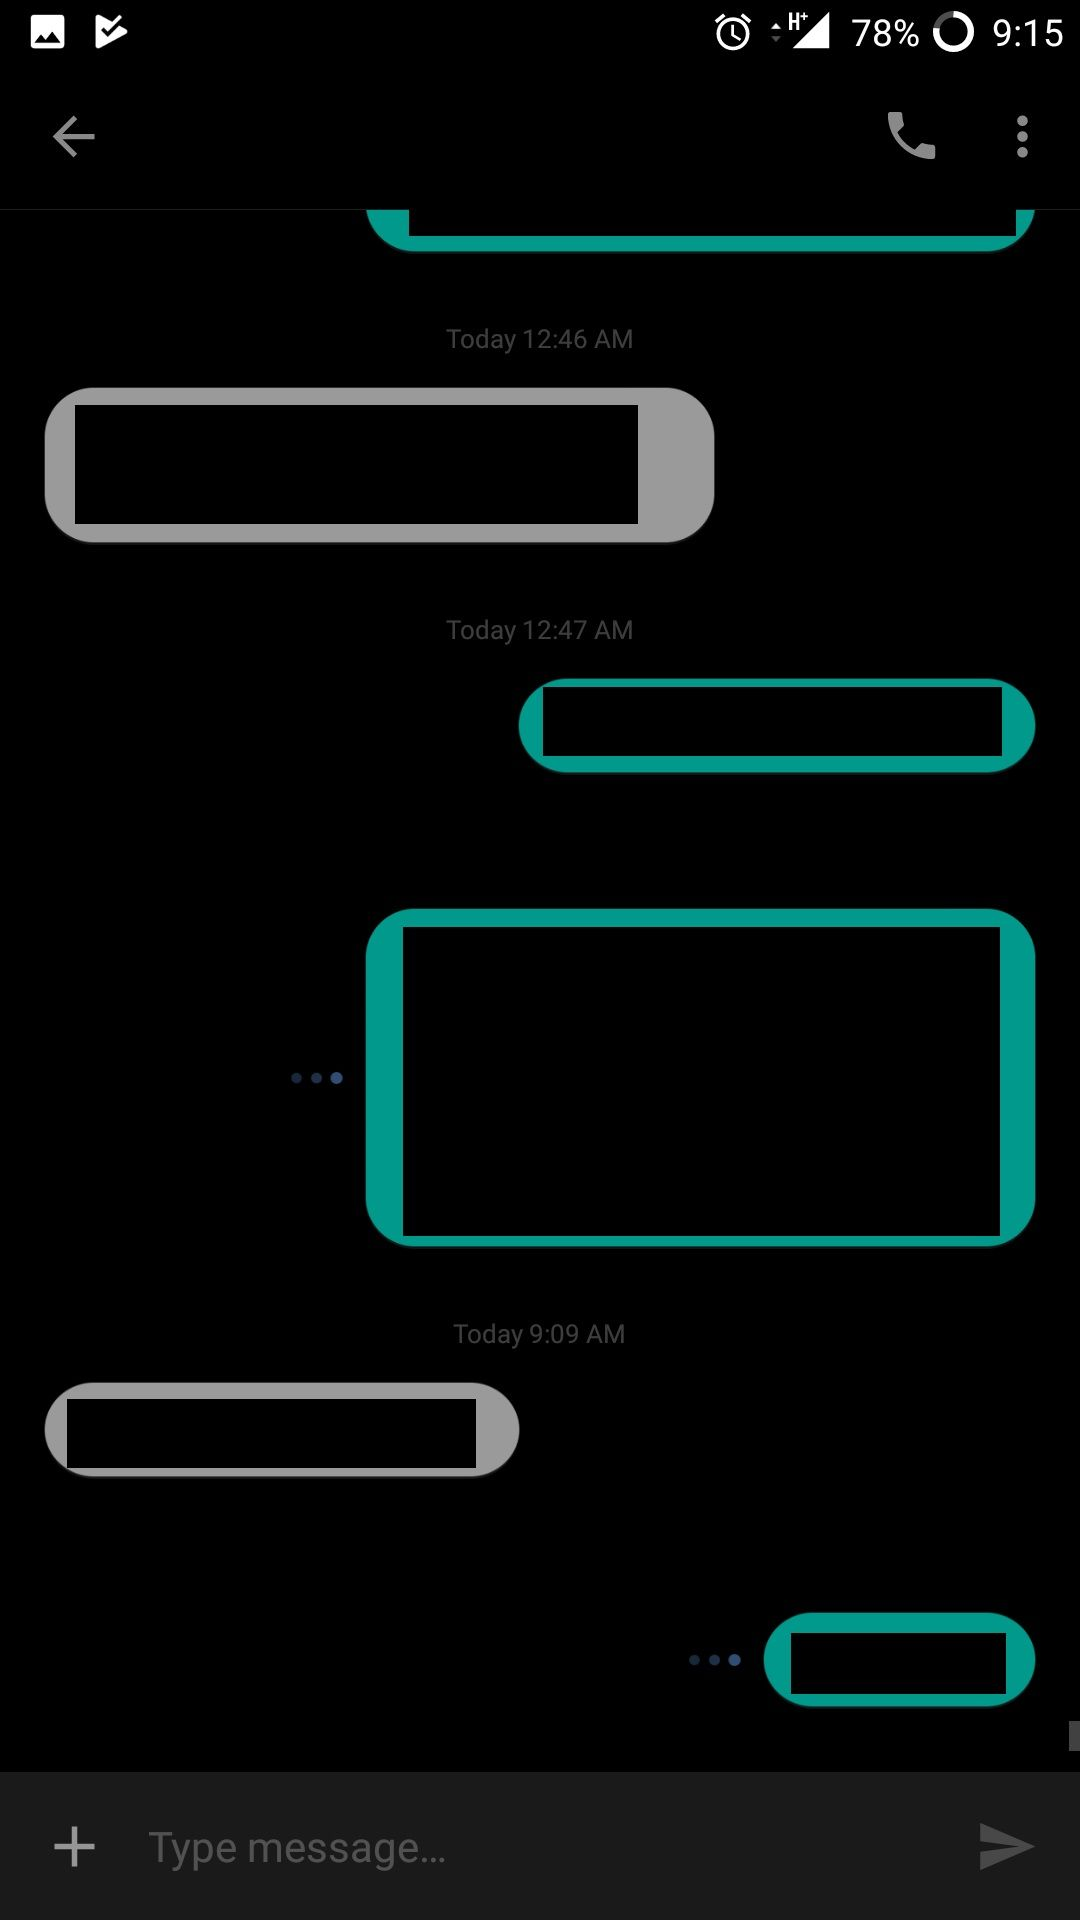 Sending SMS not working properly - OnePlus Community